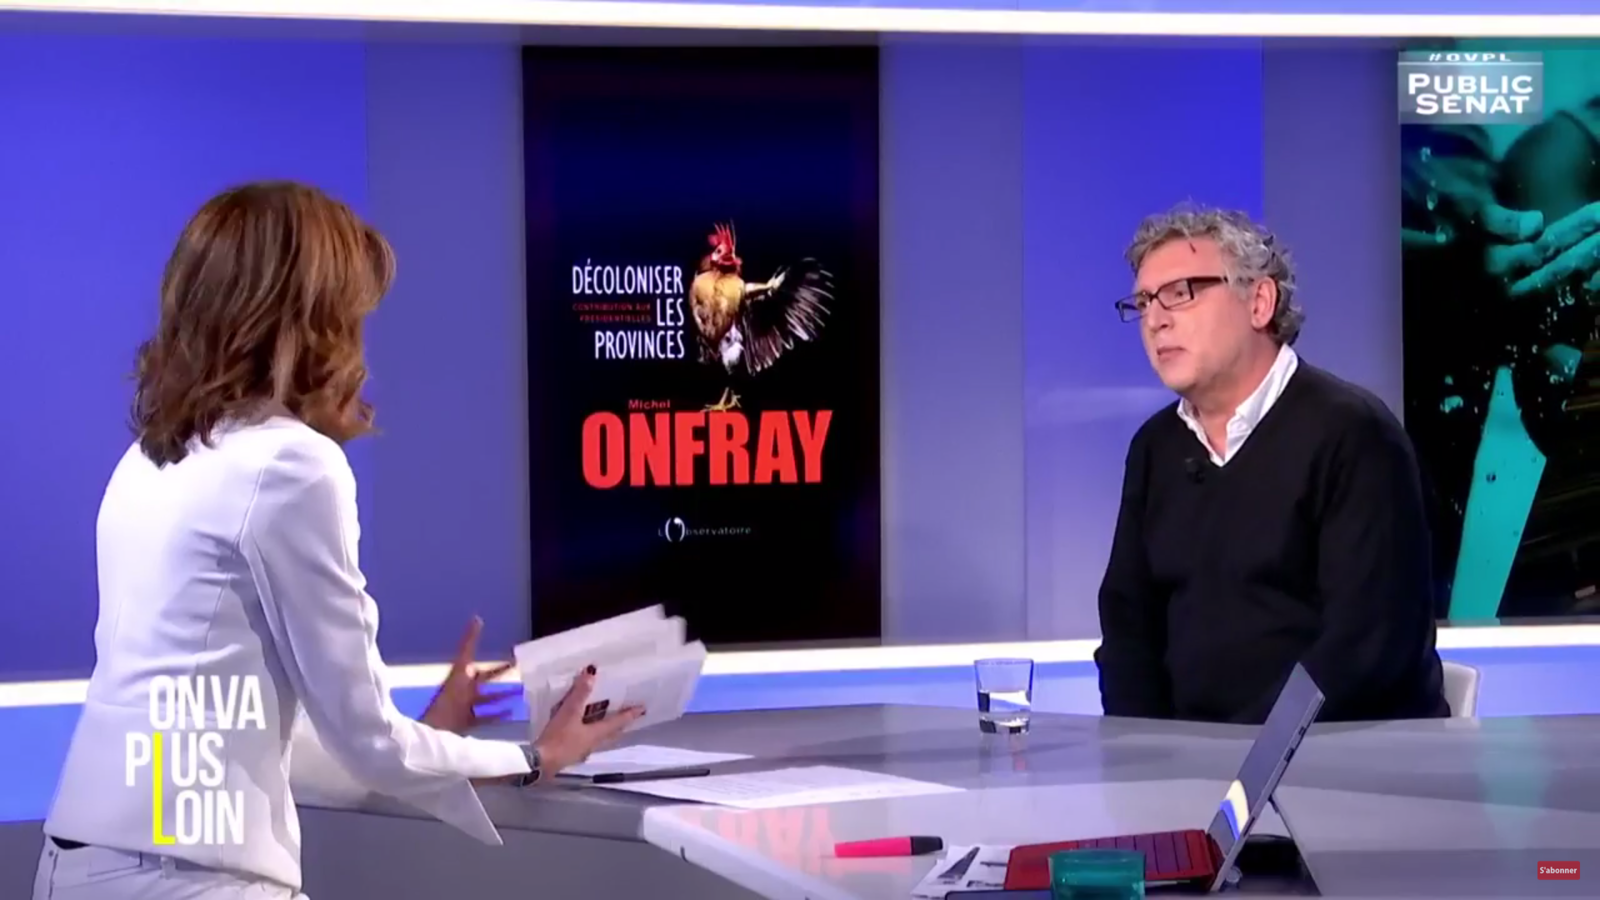 Michel Onfray - On va plus loin (Public Sénat) - 24.03.2017